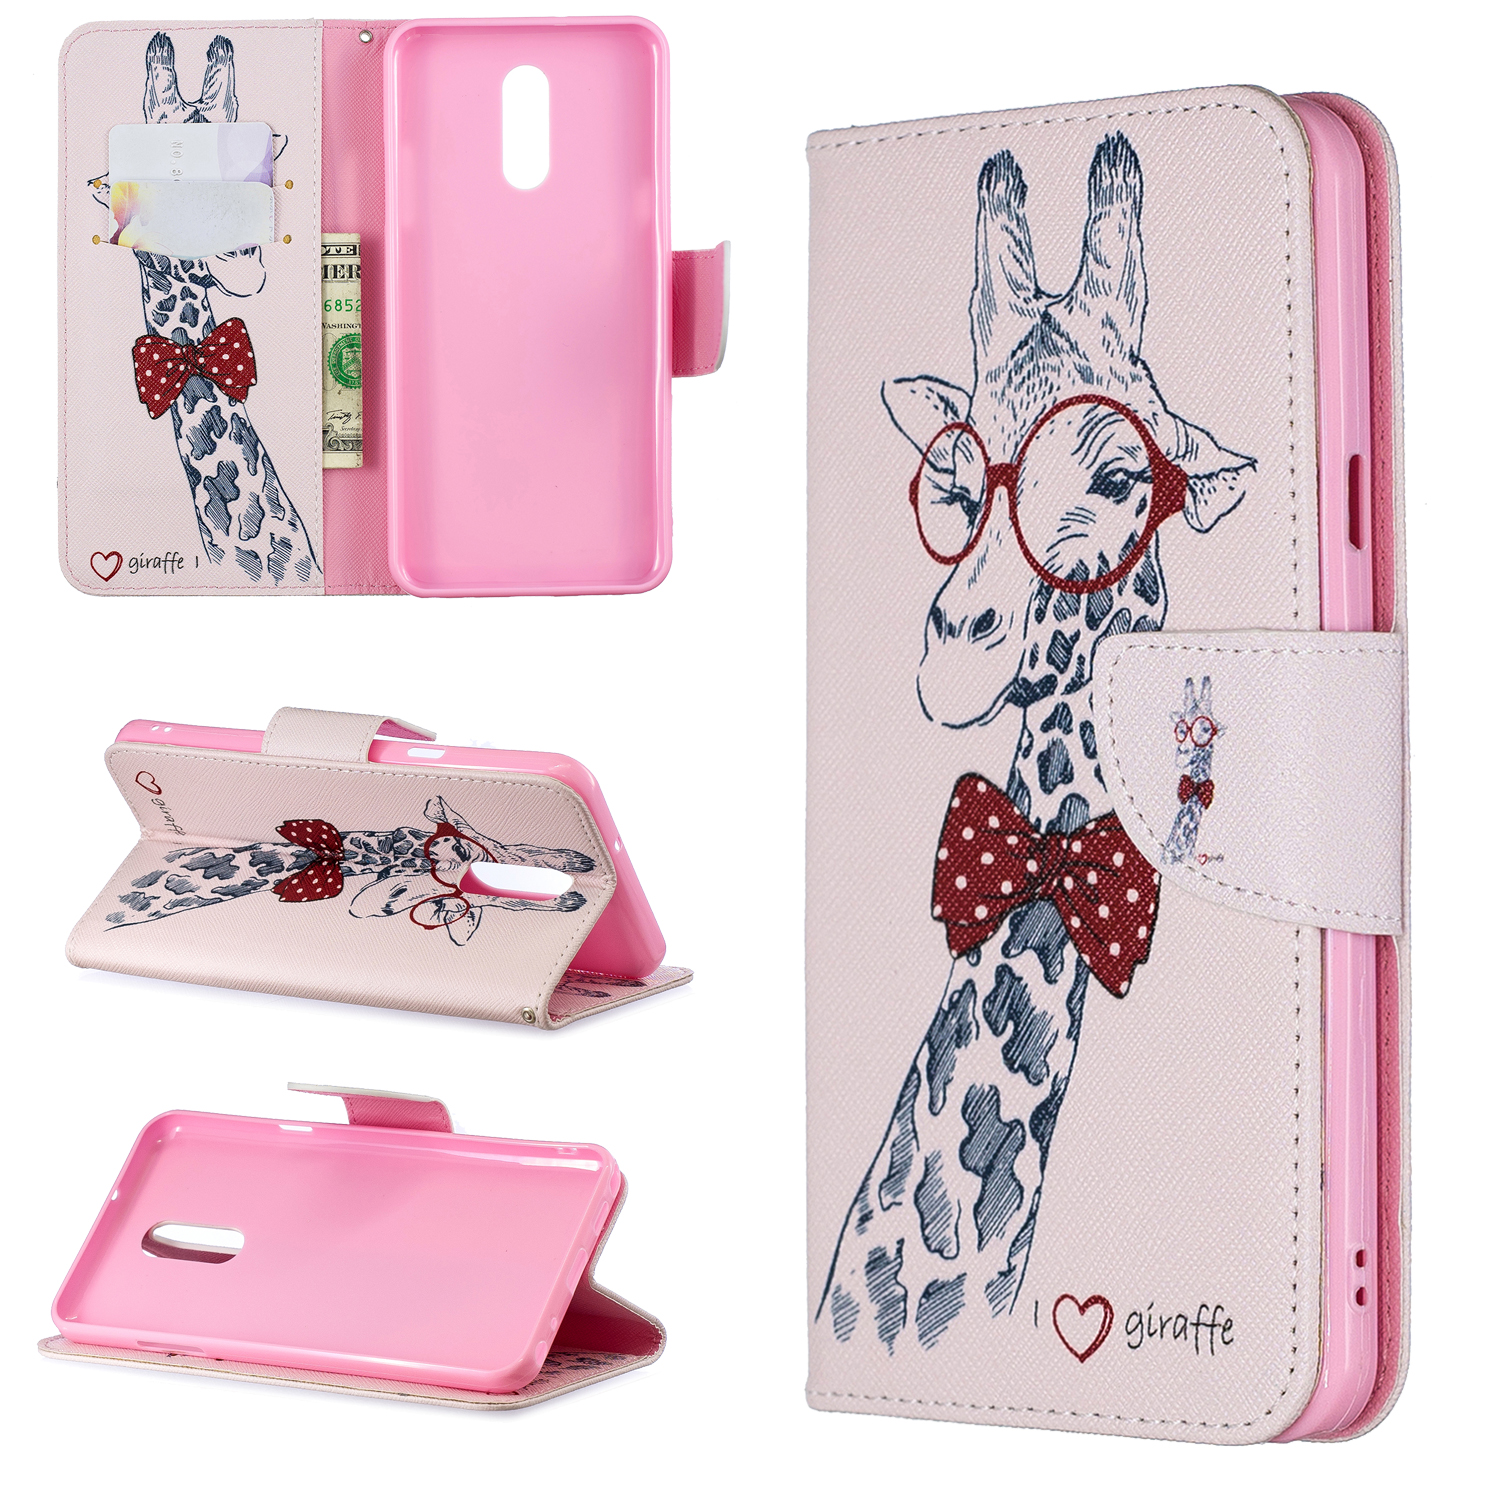 HUANGTAOLI PU Leather Flip Wallet Cover Case Card Slots For LG Stylo 4 Stylo 5 K8 K10 2018 V30 H930 Phone Case in Wallet Cases from Cellphones Telecommunications